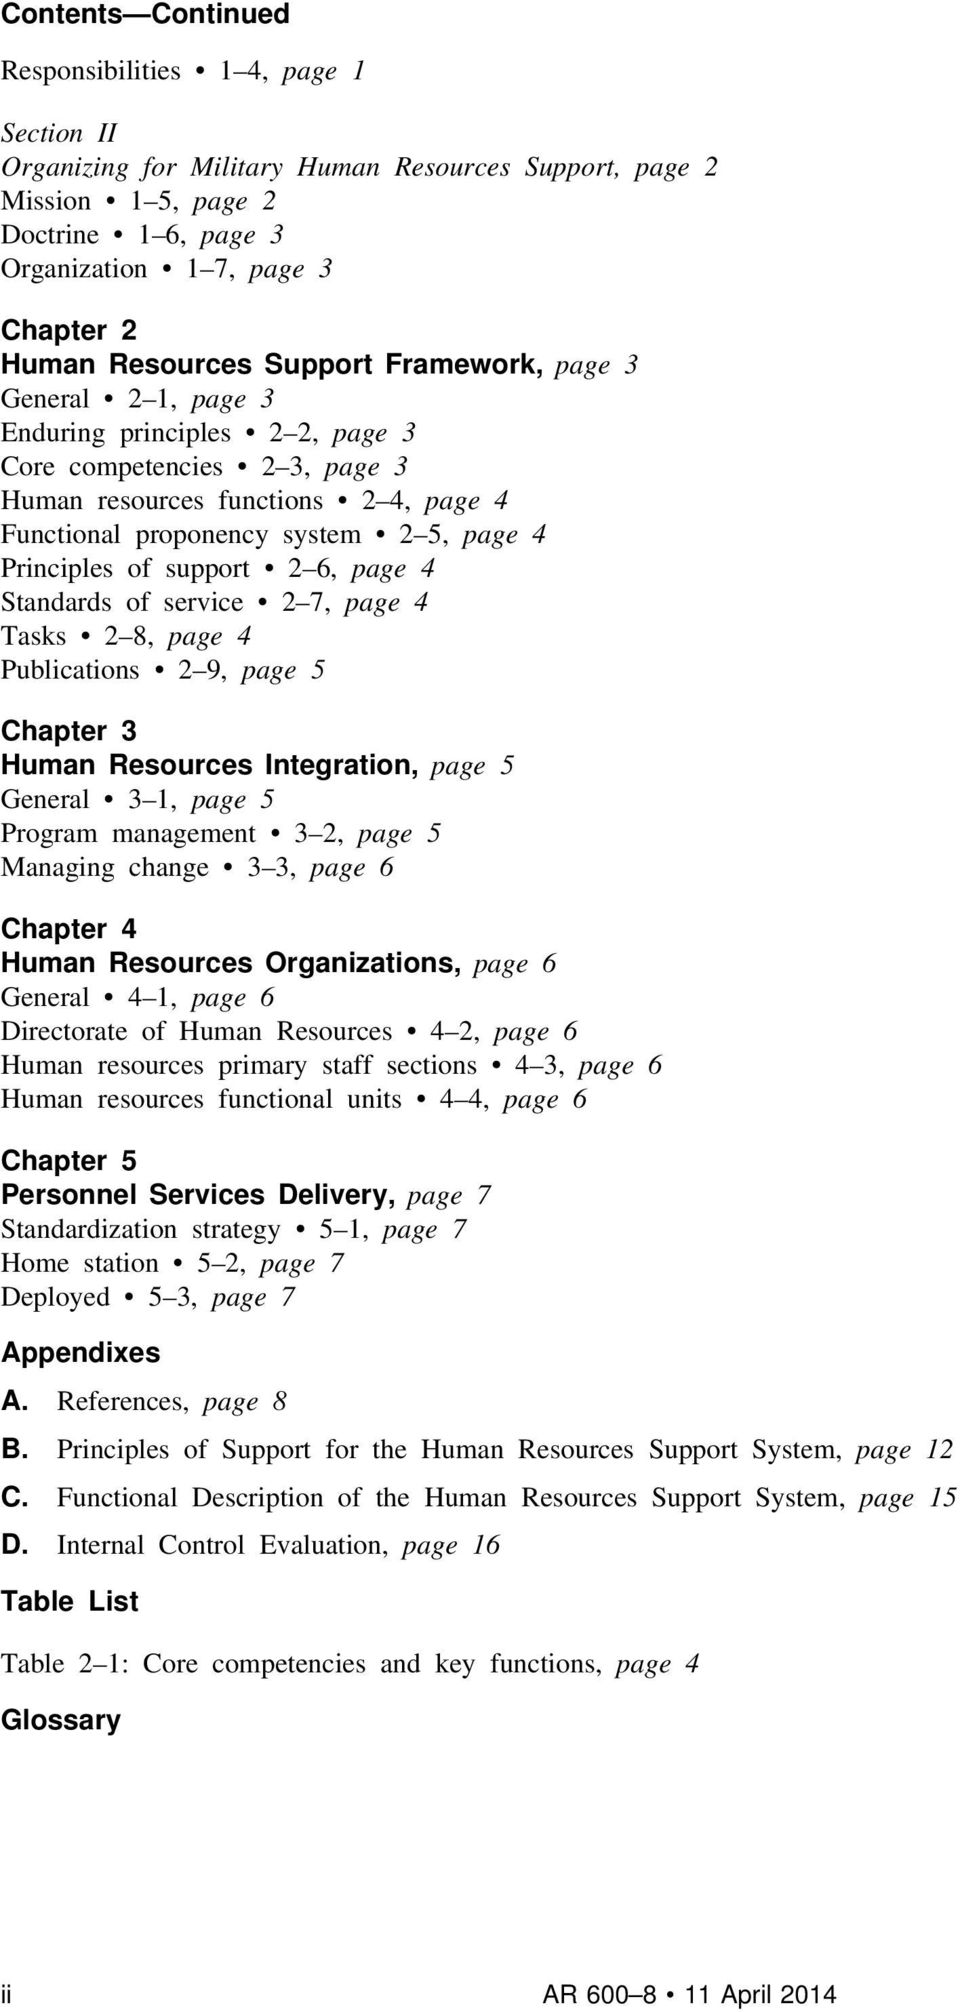 Principles of support 2 6, page 4 Standards of service 2 7, page 4 Tasks 2 8, page 4 Publications 2 9, page 5 Chapter 3 Human Resources Integration, page 5 General 3 1, page 5 Program management 3 2,